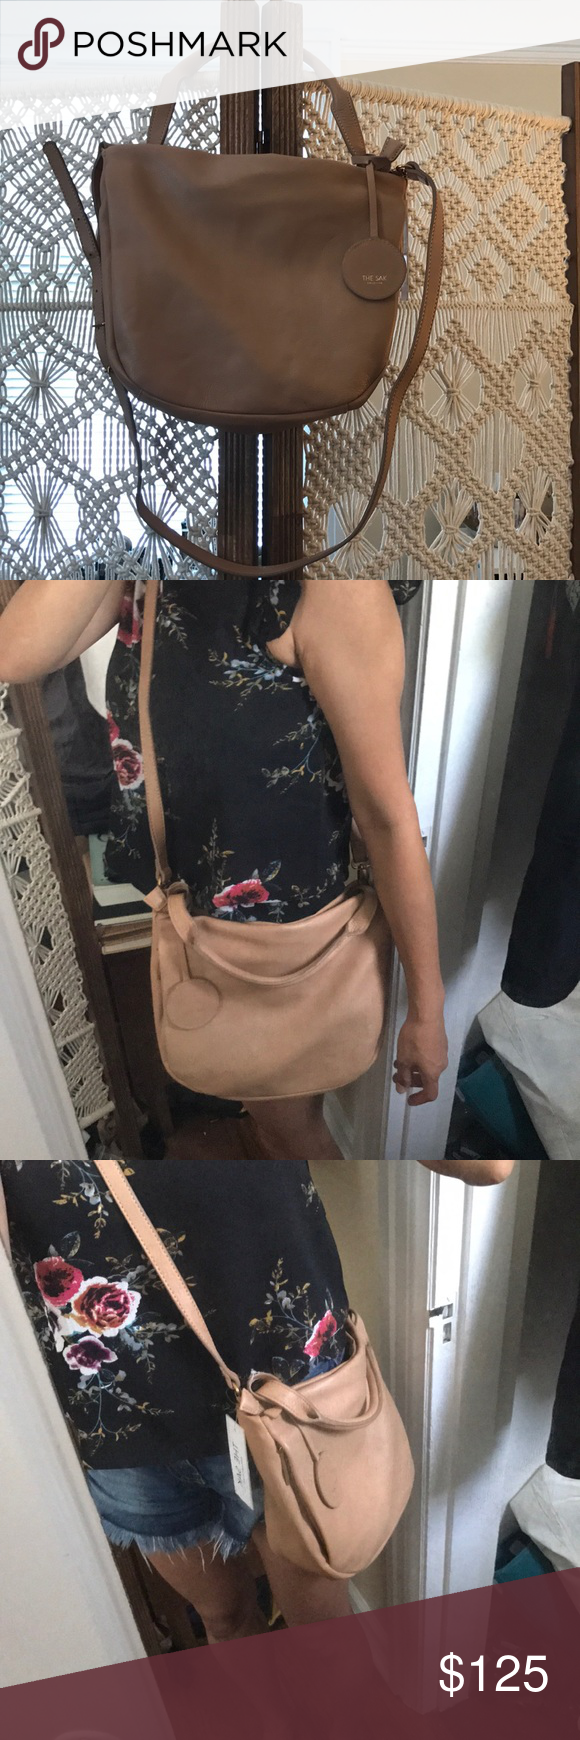 The Sak 120 Small Hobo purse 12in L x 3.8in W x 10in H  Drop up to 24  inches Main zipper closure Two hidden front vertical pockets Interior  contains 4 ... 040ec3dae7